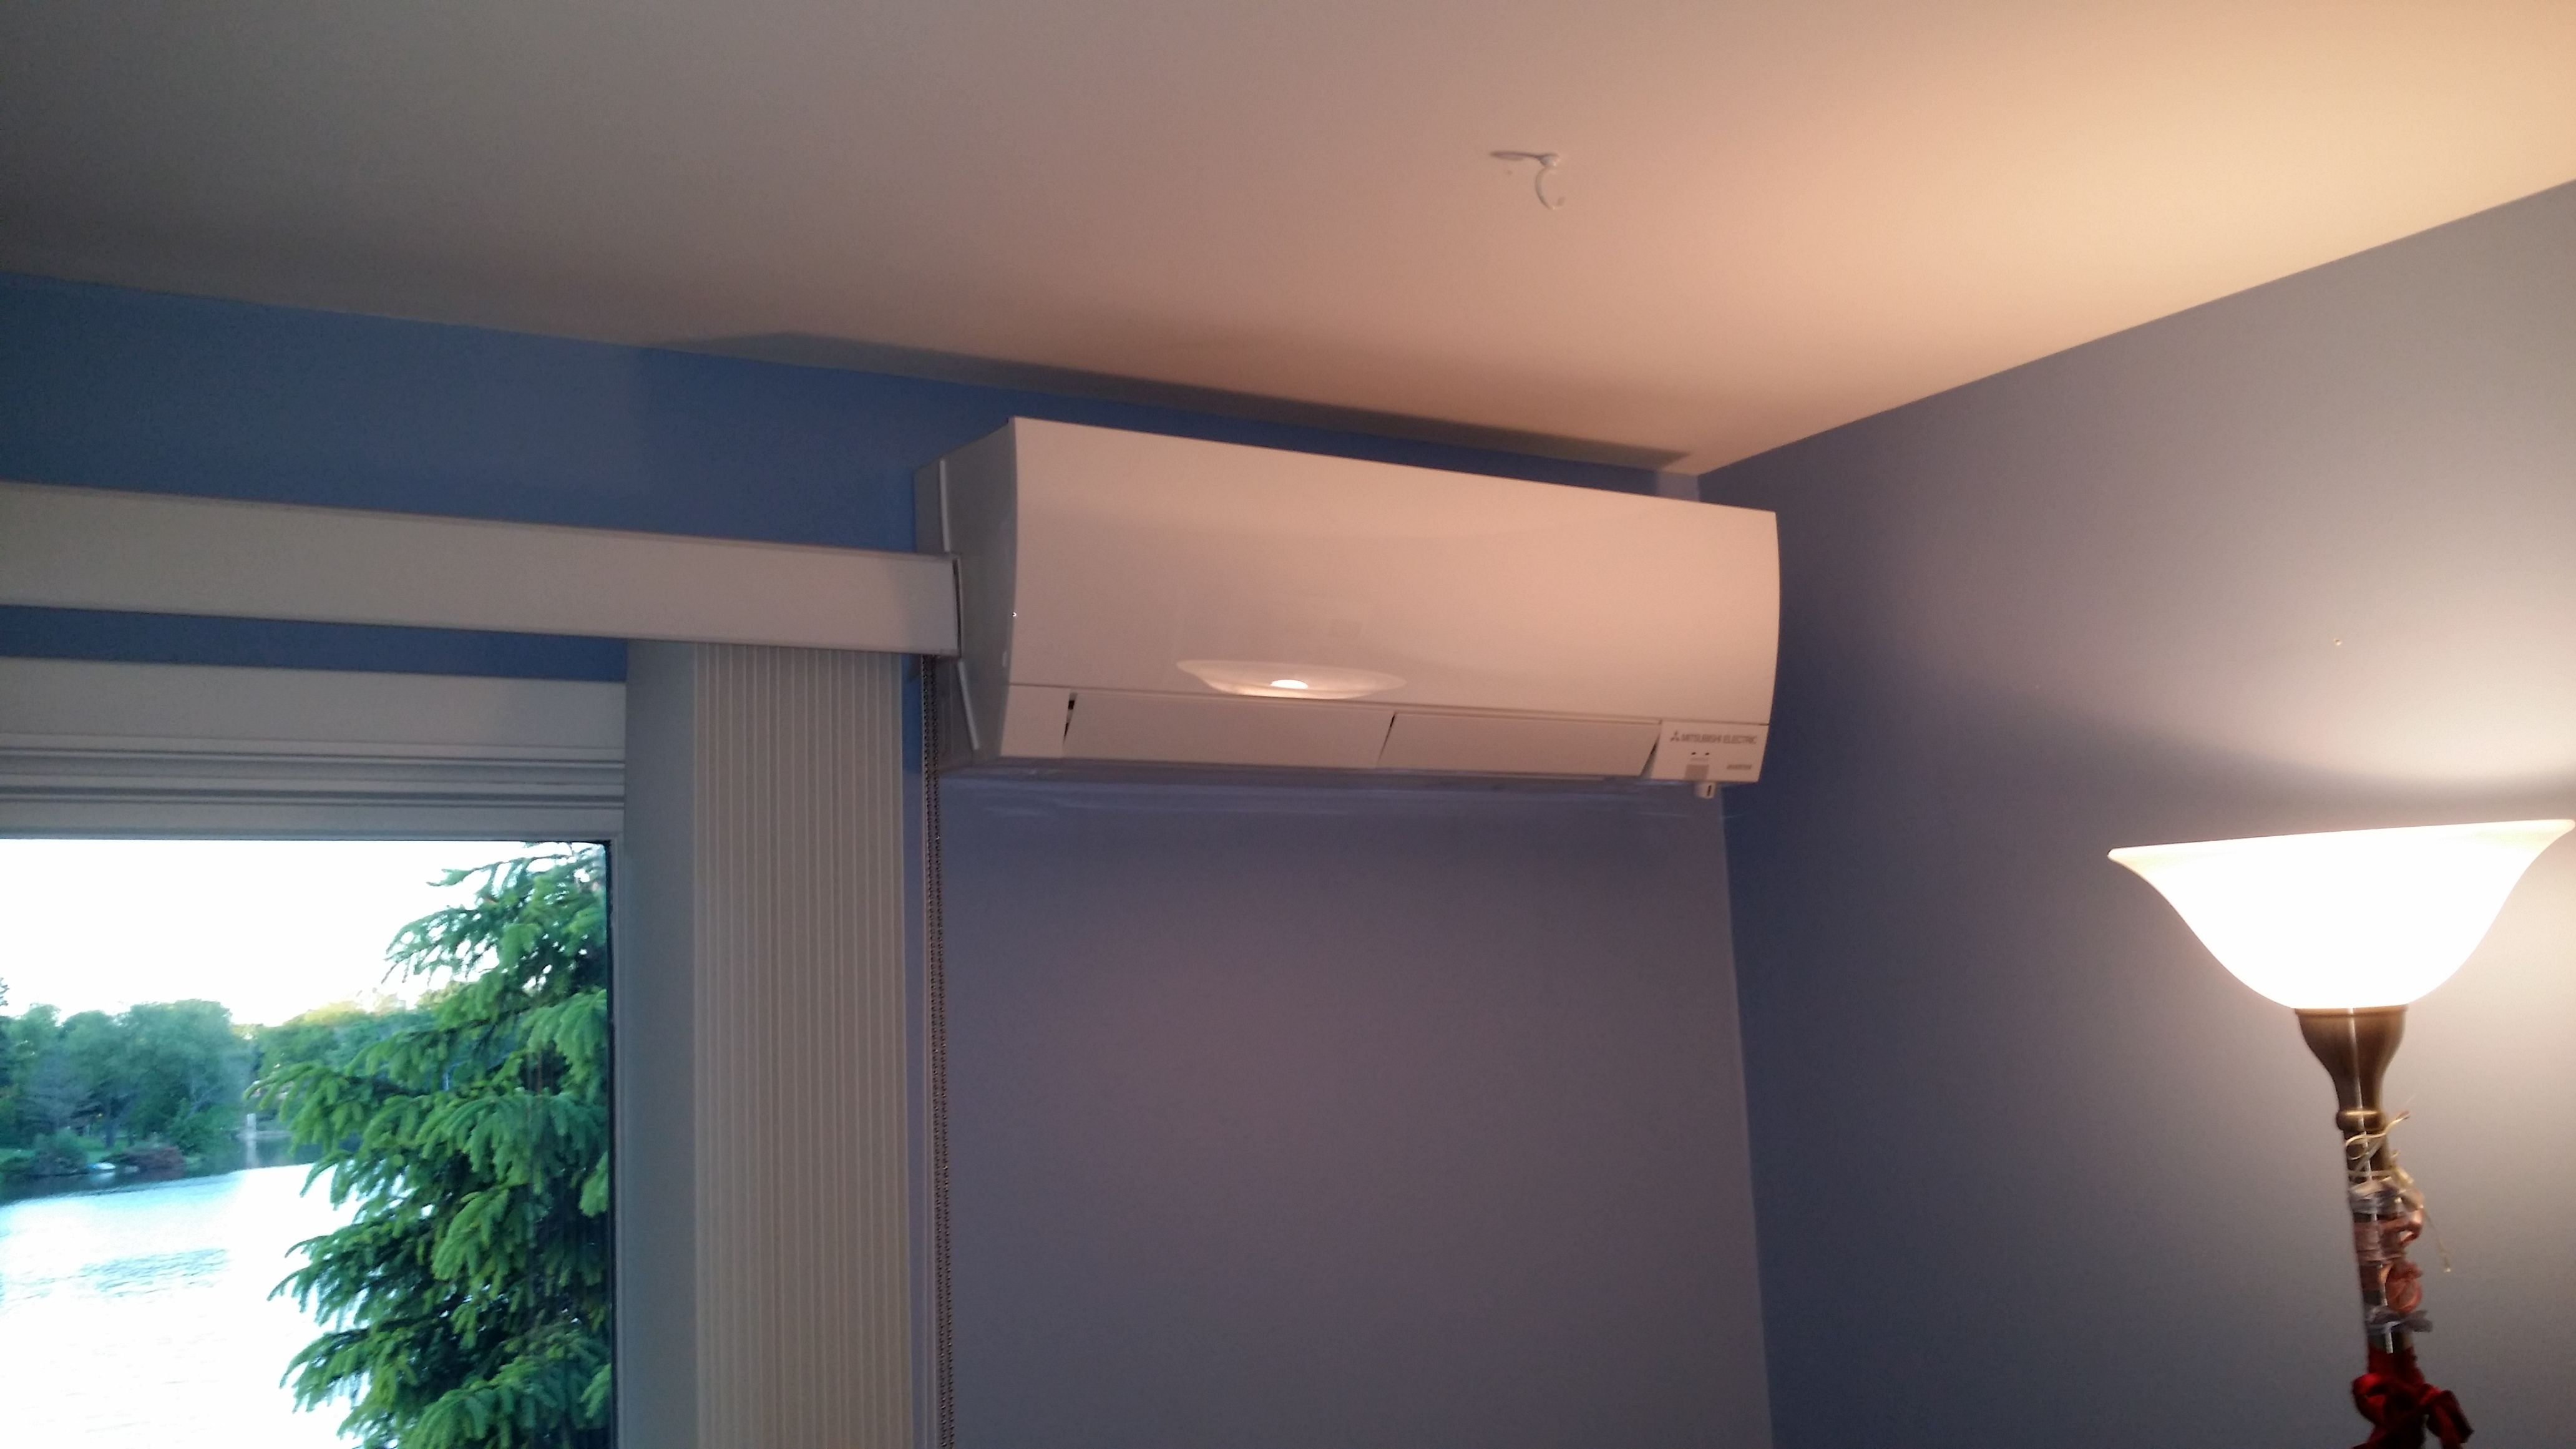 Mitsubishi Hyper Heating indoor wall mount unit installed by ...